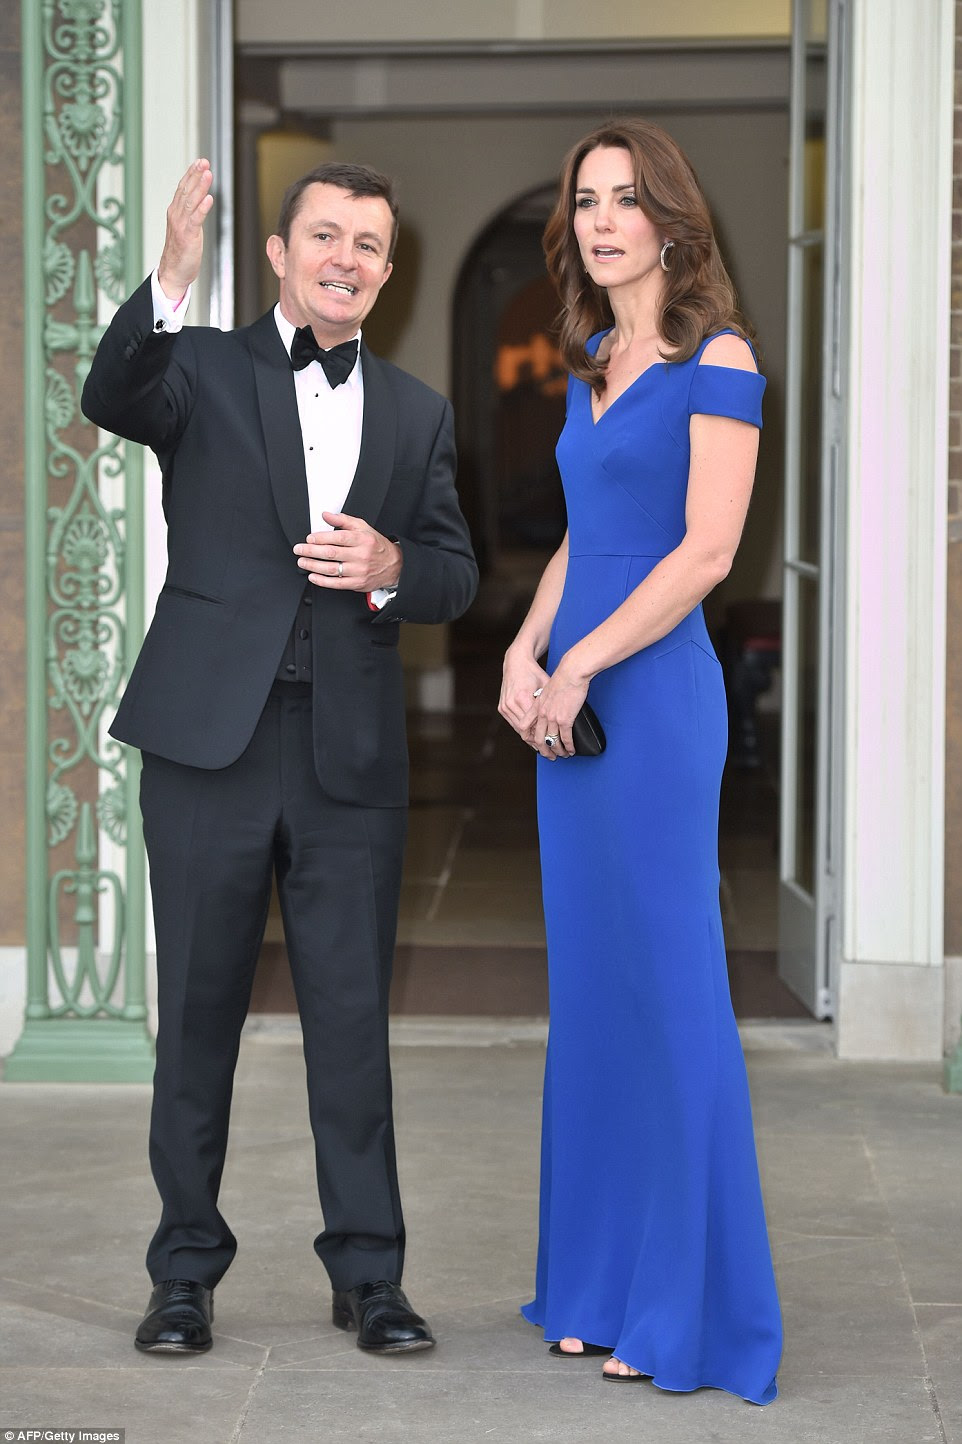 Kate chats to an aide as she prepared to greet guests at the reception in Kensington Palace's gardens